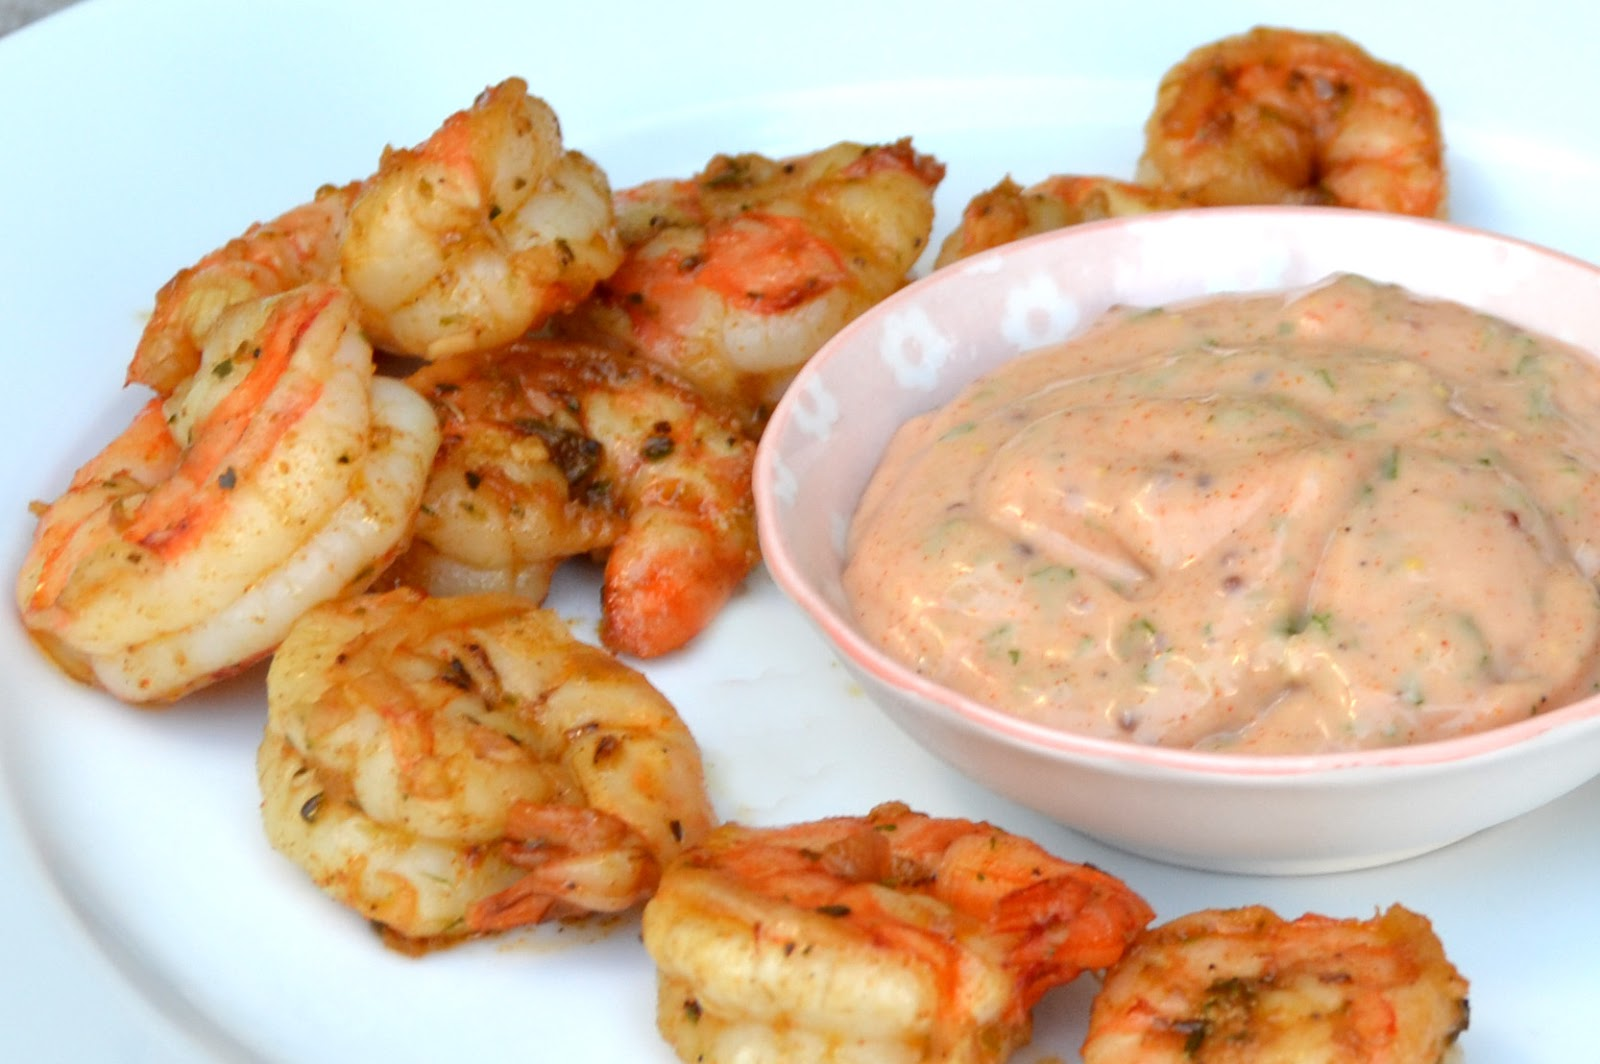 remoulade louisiana remoulade recipes dishmaps louisiana remoulade ...